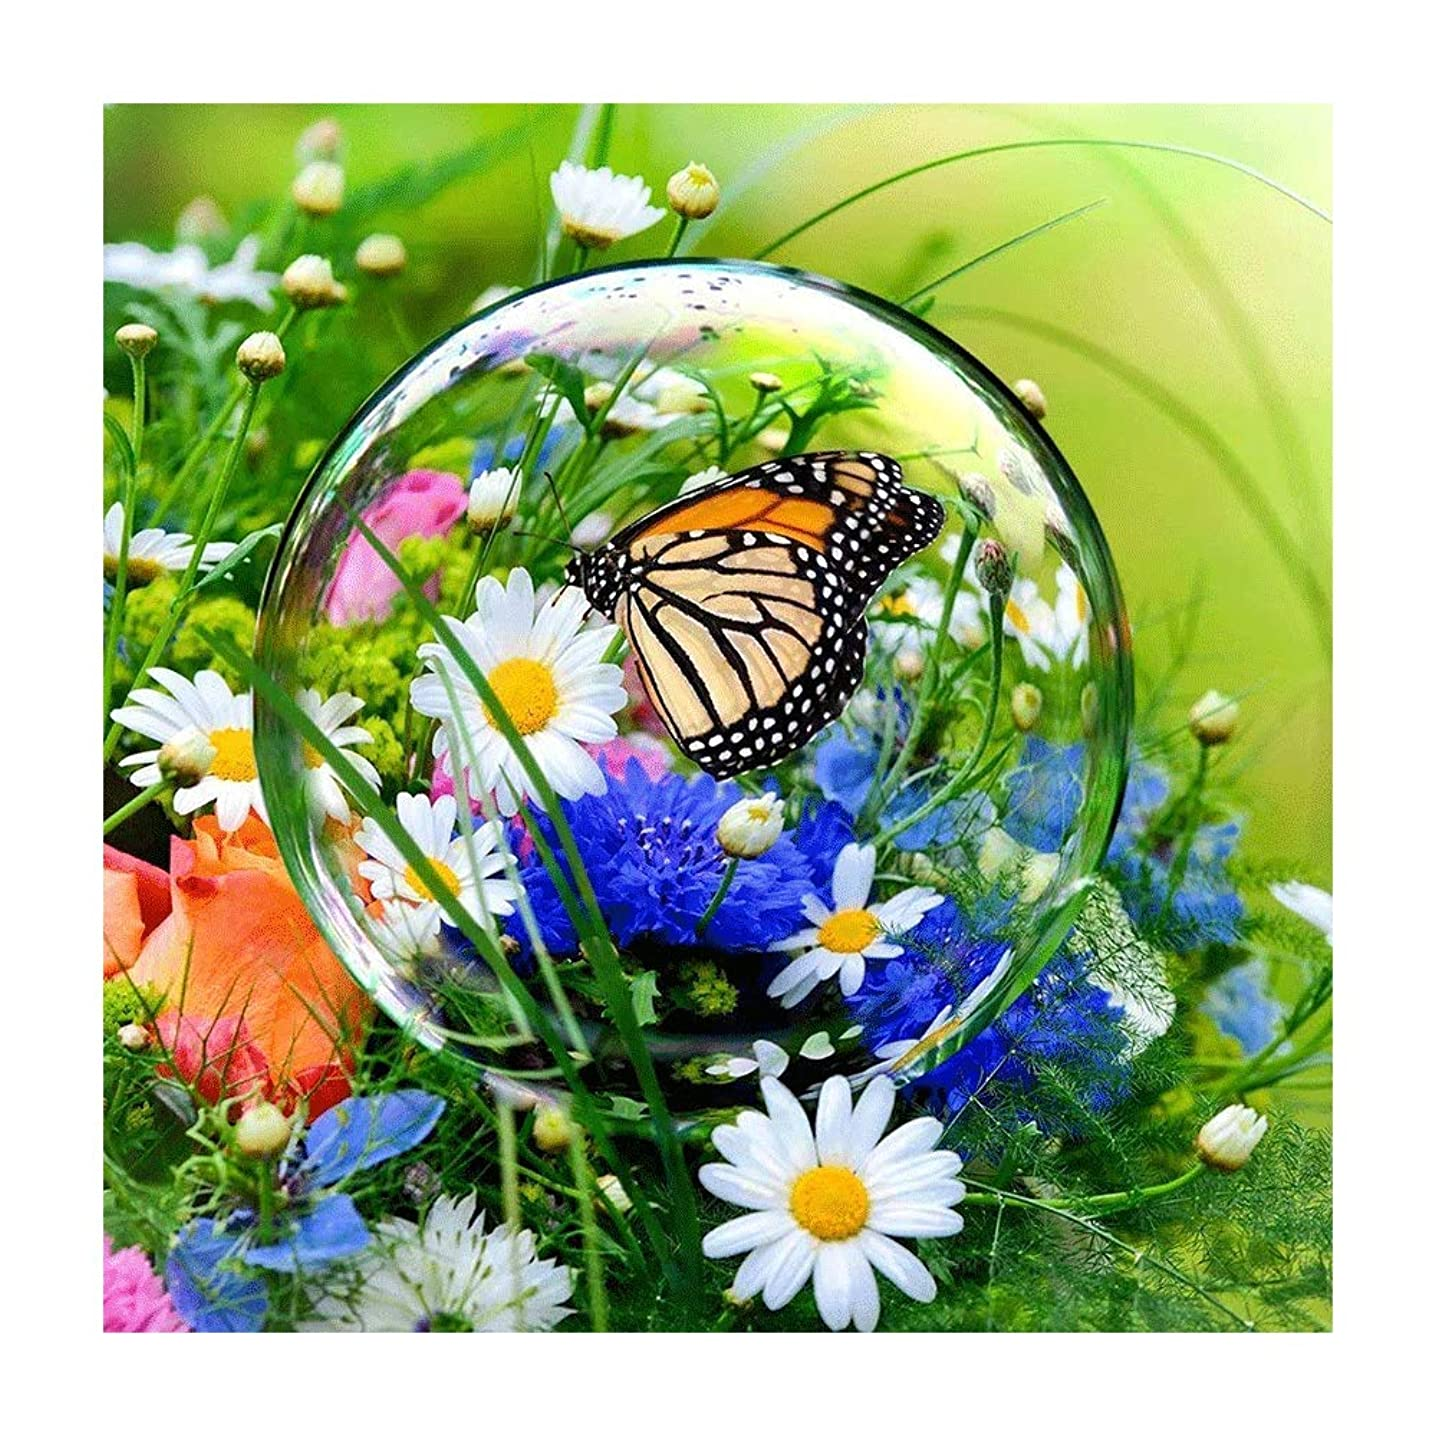 5D DIY Diamond Painting by Number Butterfly Dew Daisy Flower Cross Stitch DIY Diamond Stitch Kit Mosaic Full Round Crystal Diamond Embroidery Painting